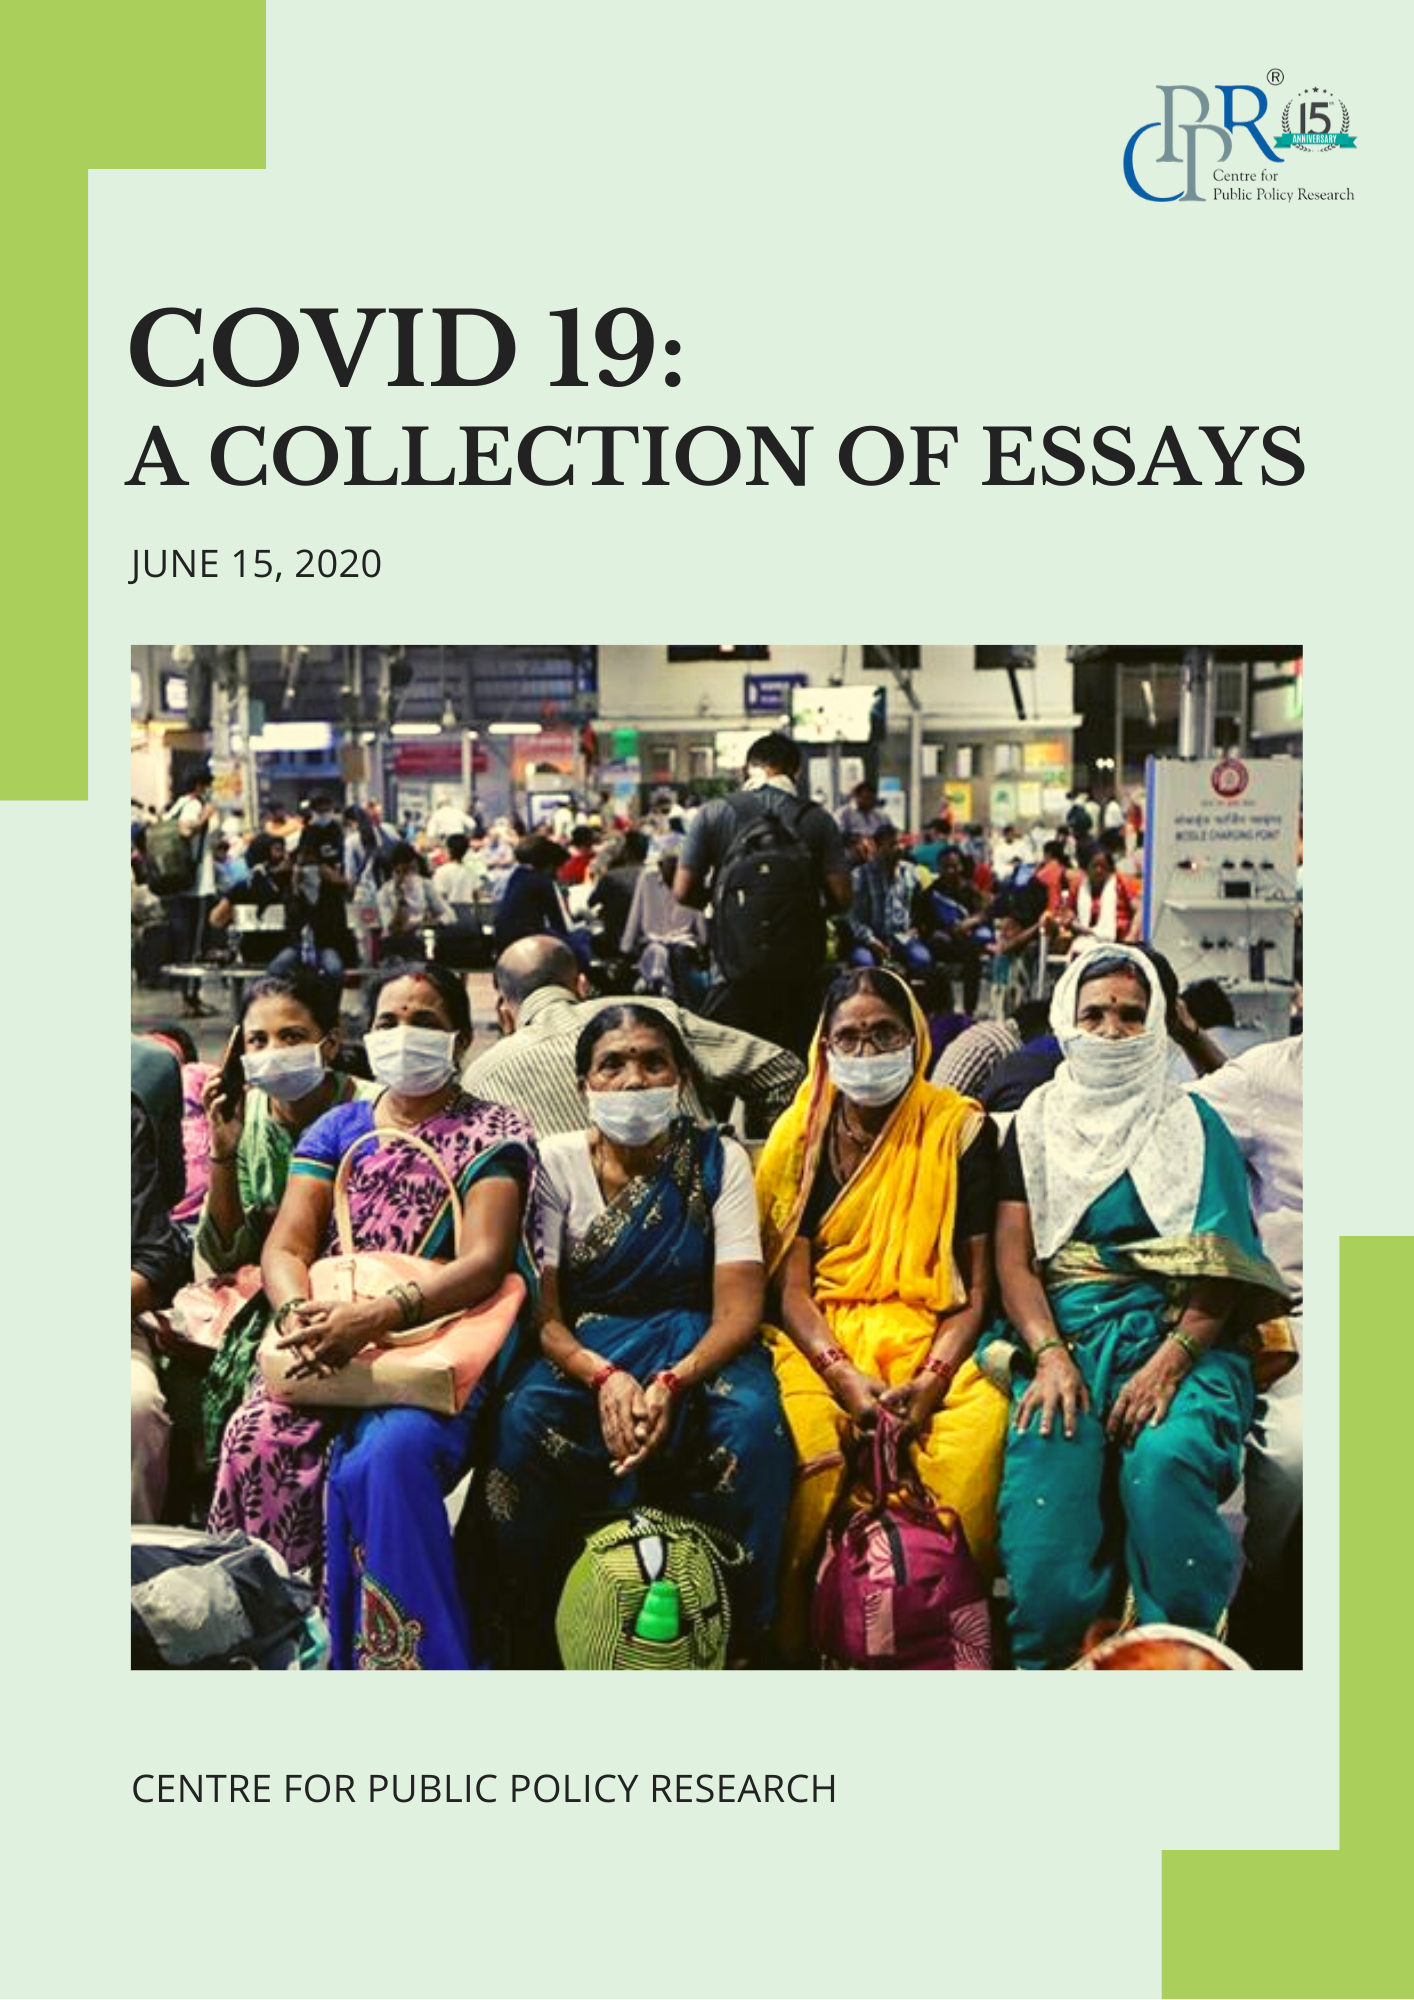 Compendium of a collection of essays on COVID19